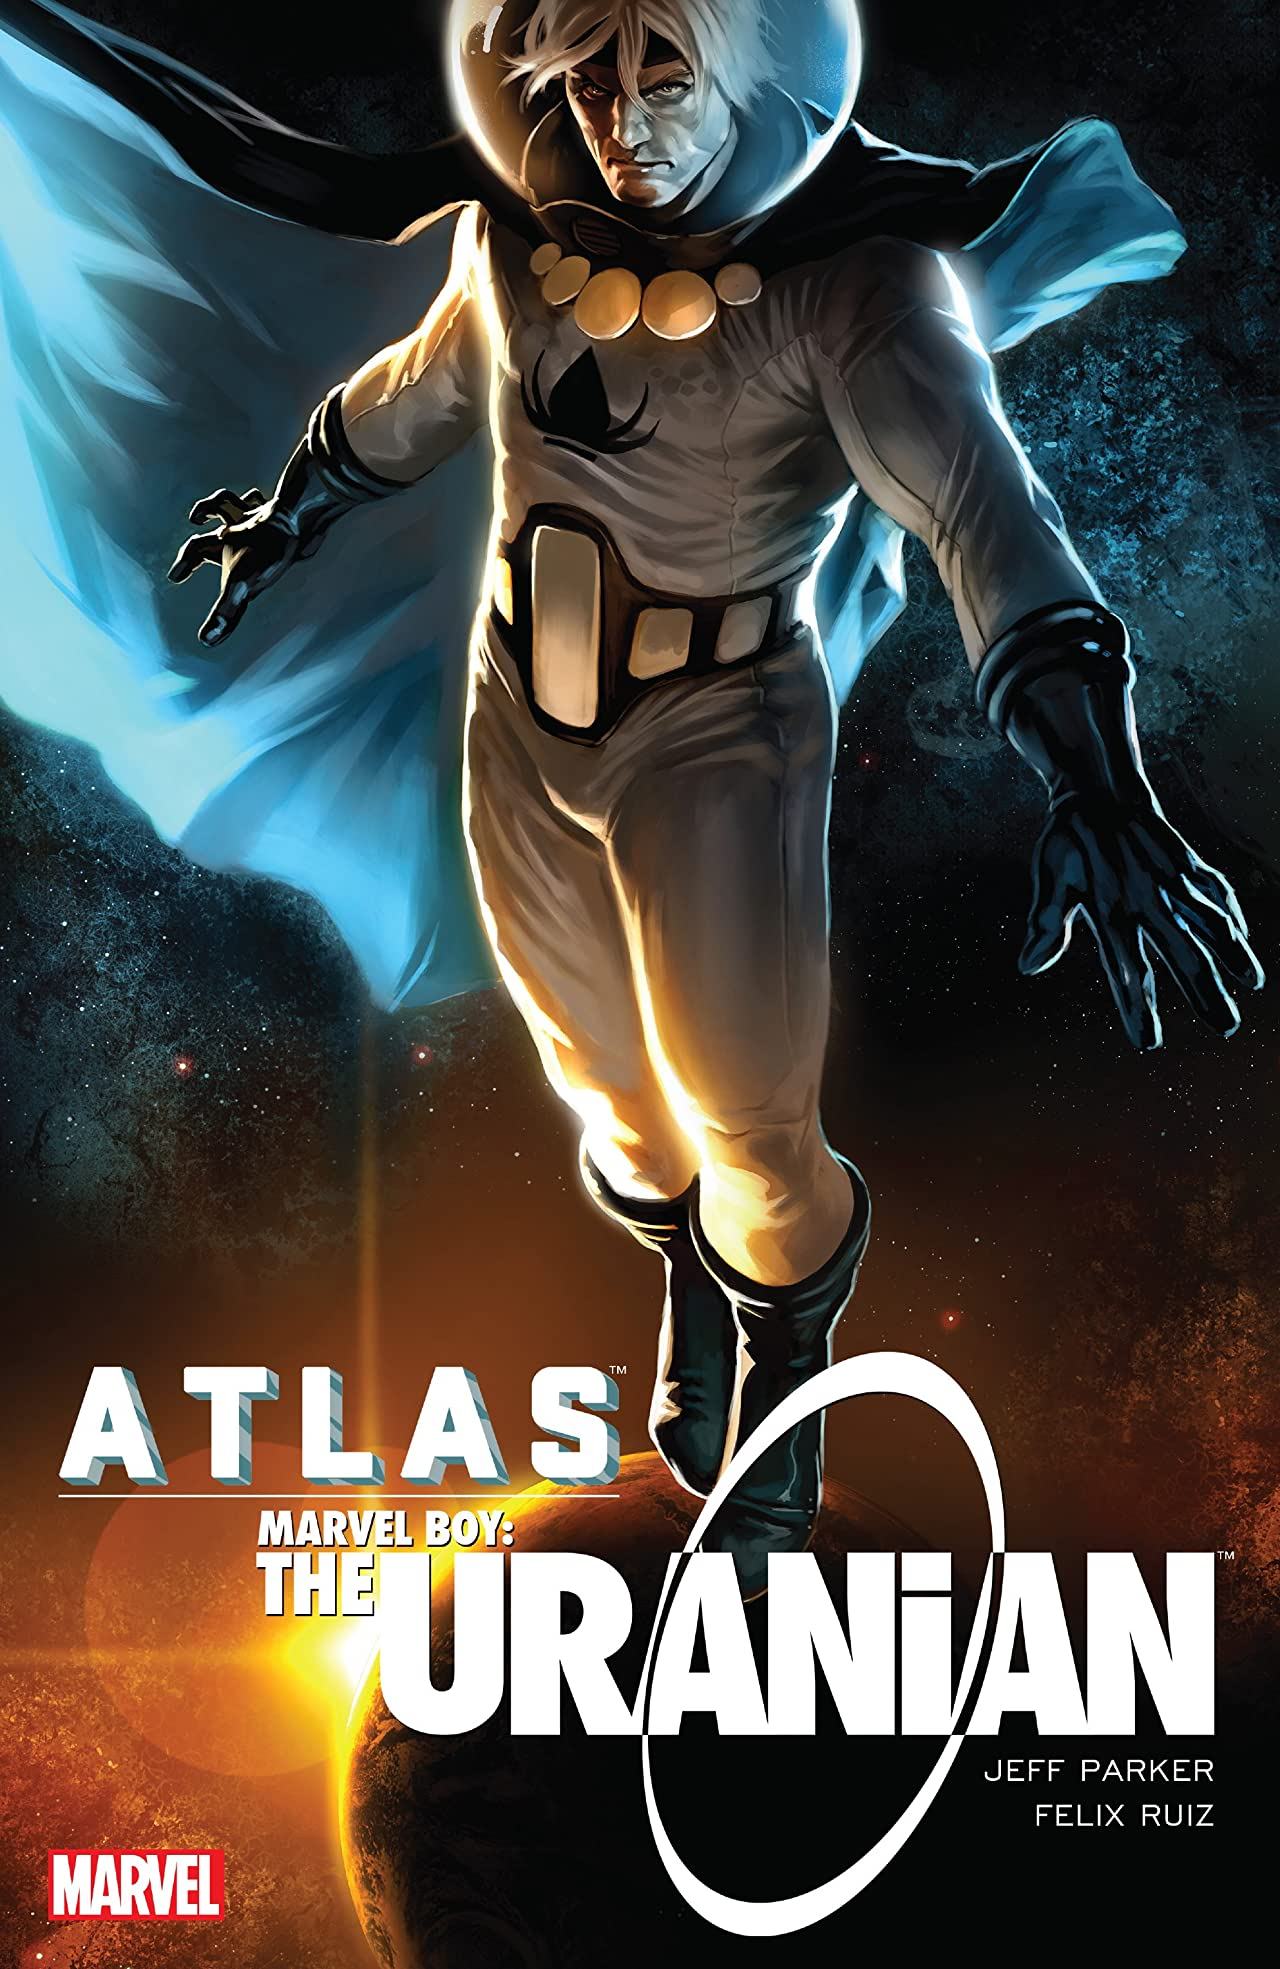 Atlas: Marvel Boy - The Uranian